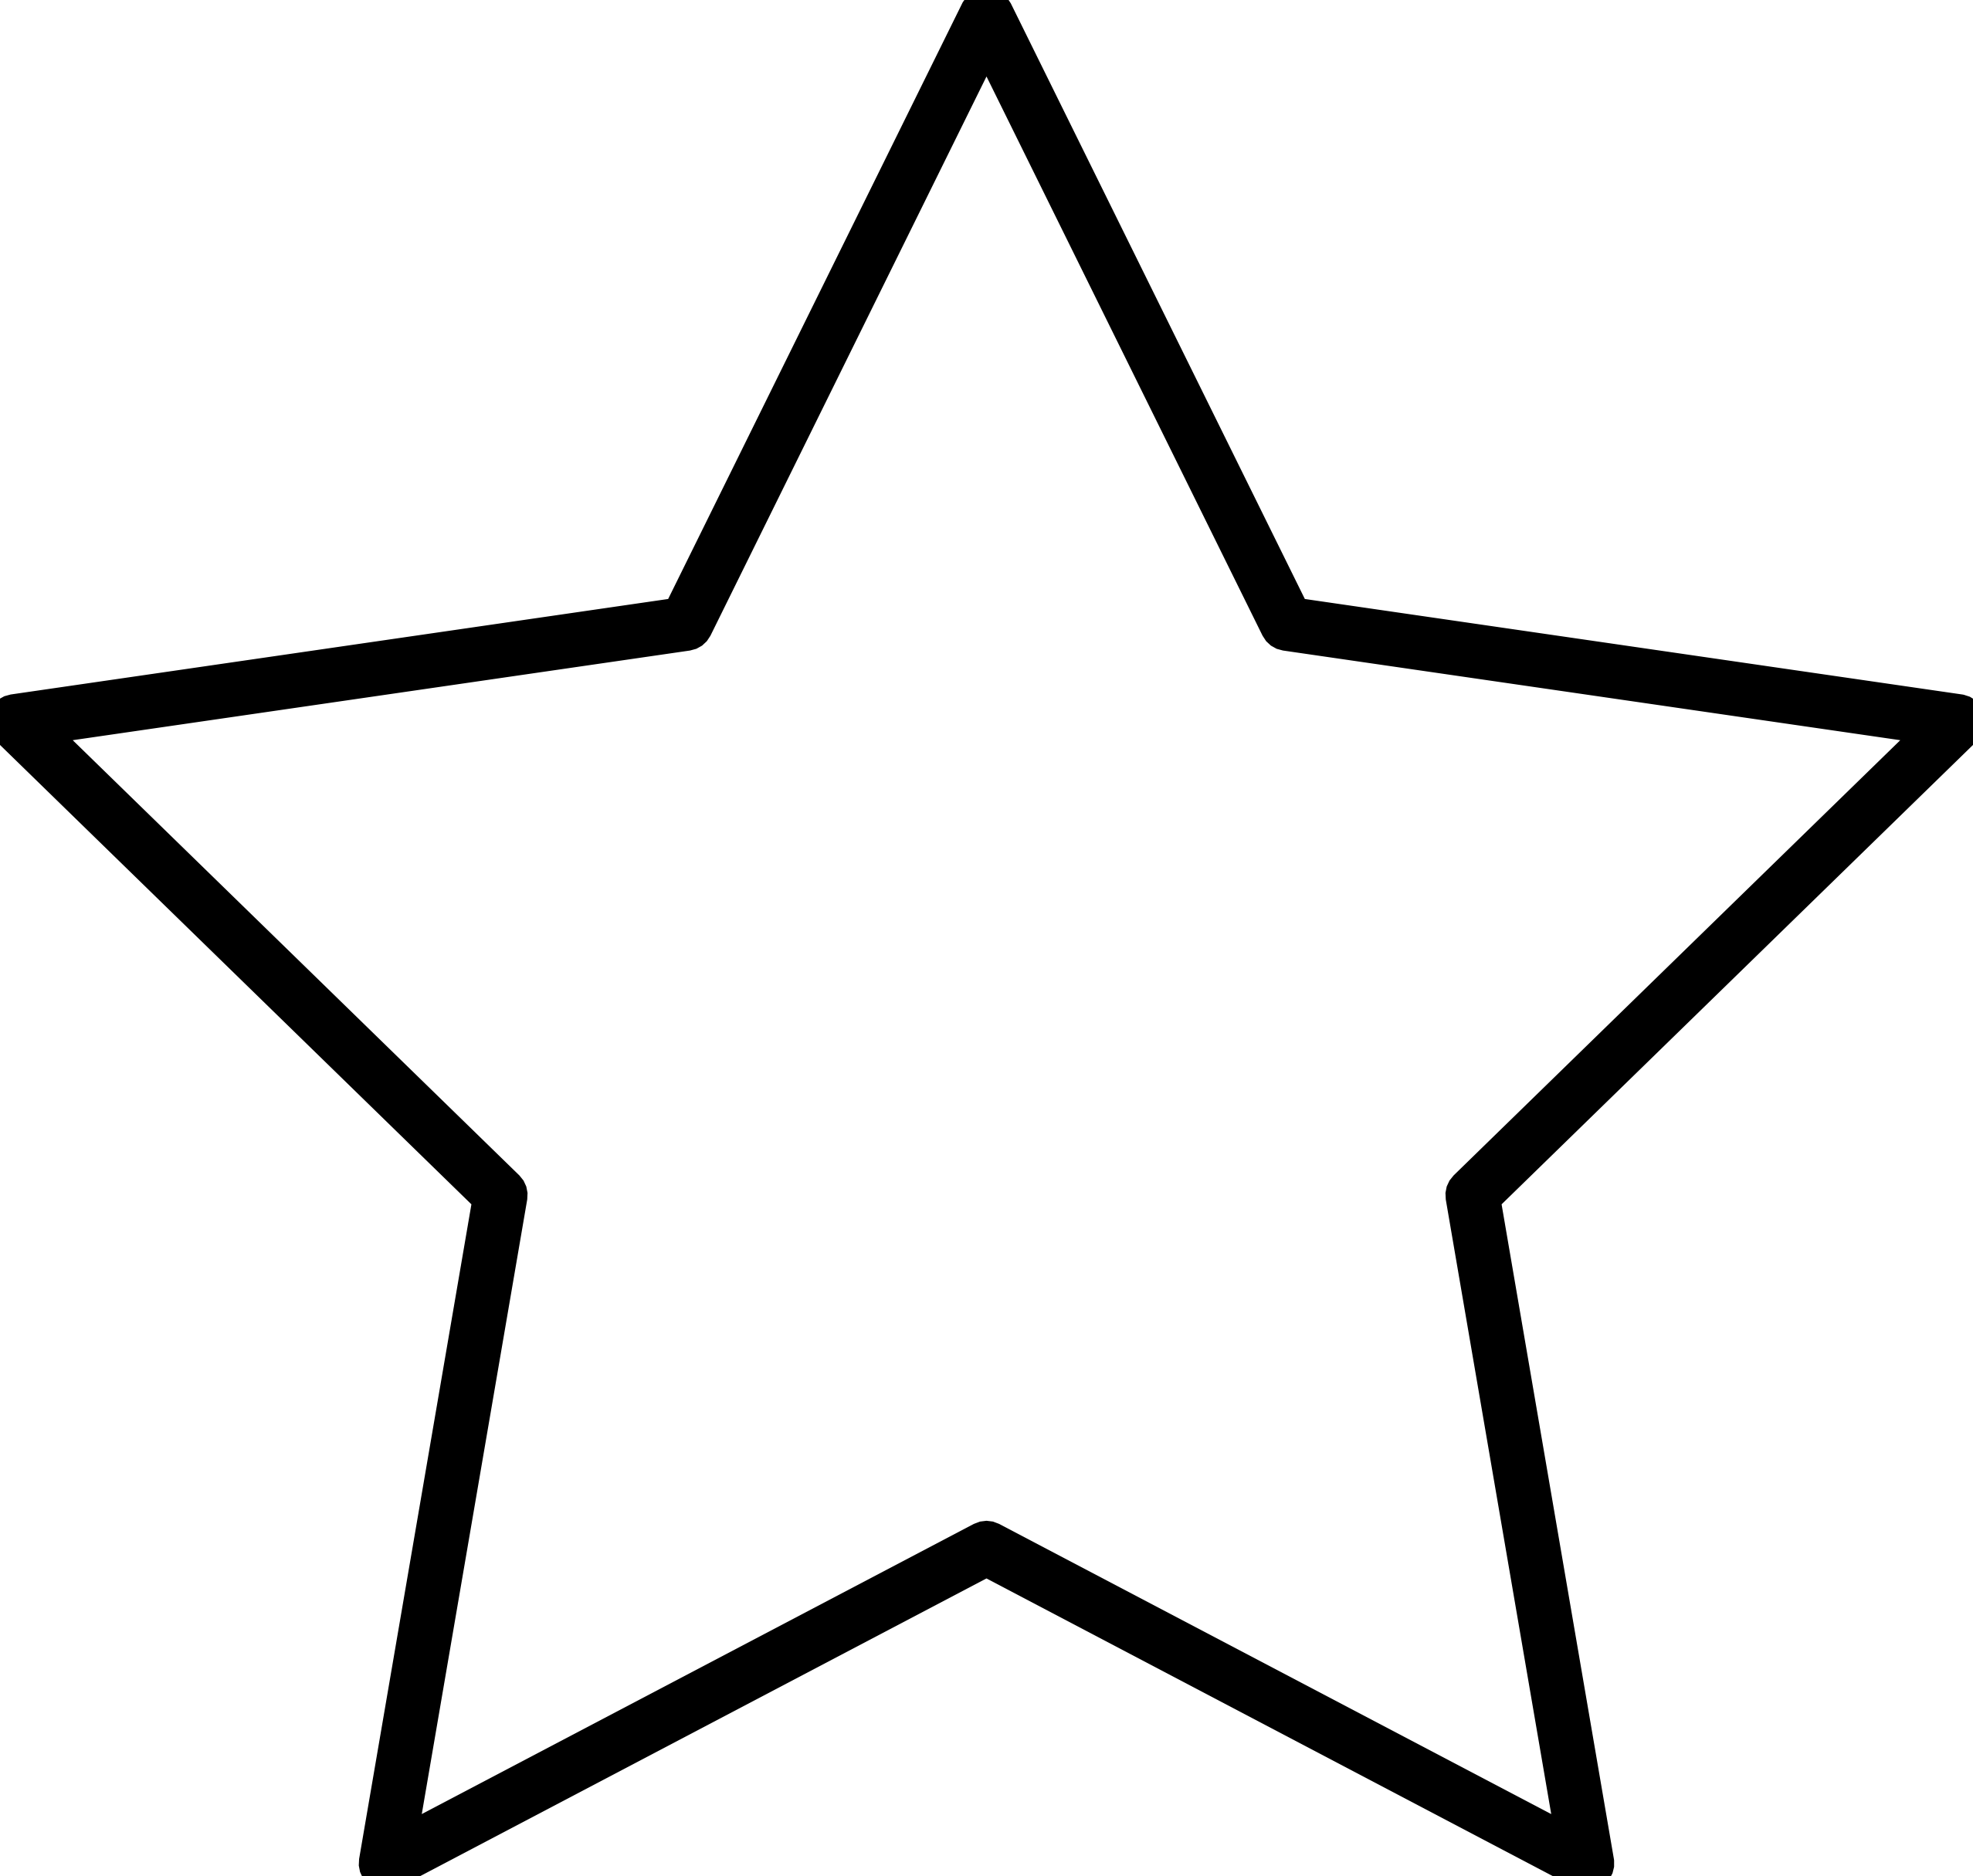 star silhouette outline clip art yellow star october 2011 rh pinterest com Christmas Star Clip Art North Star Clip Art